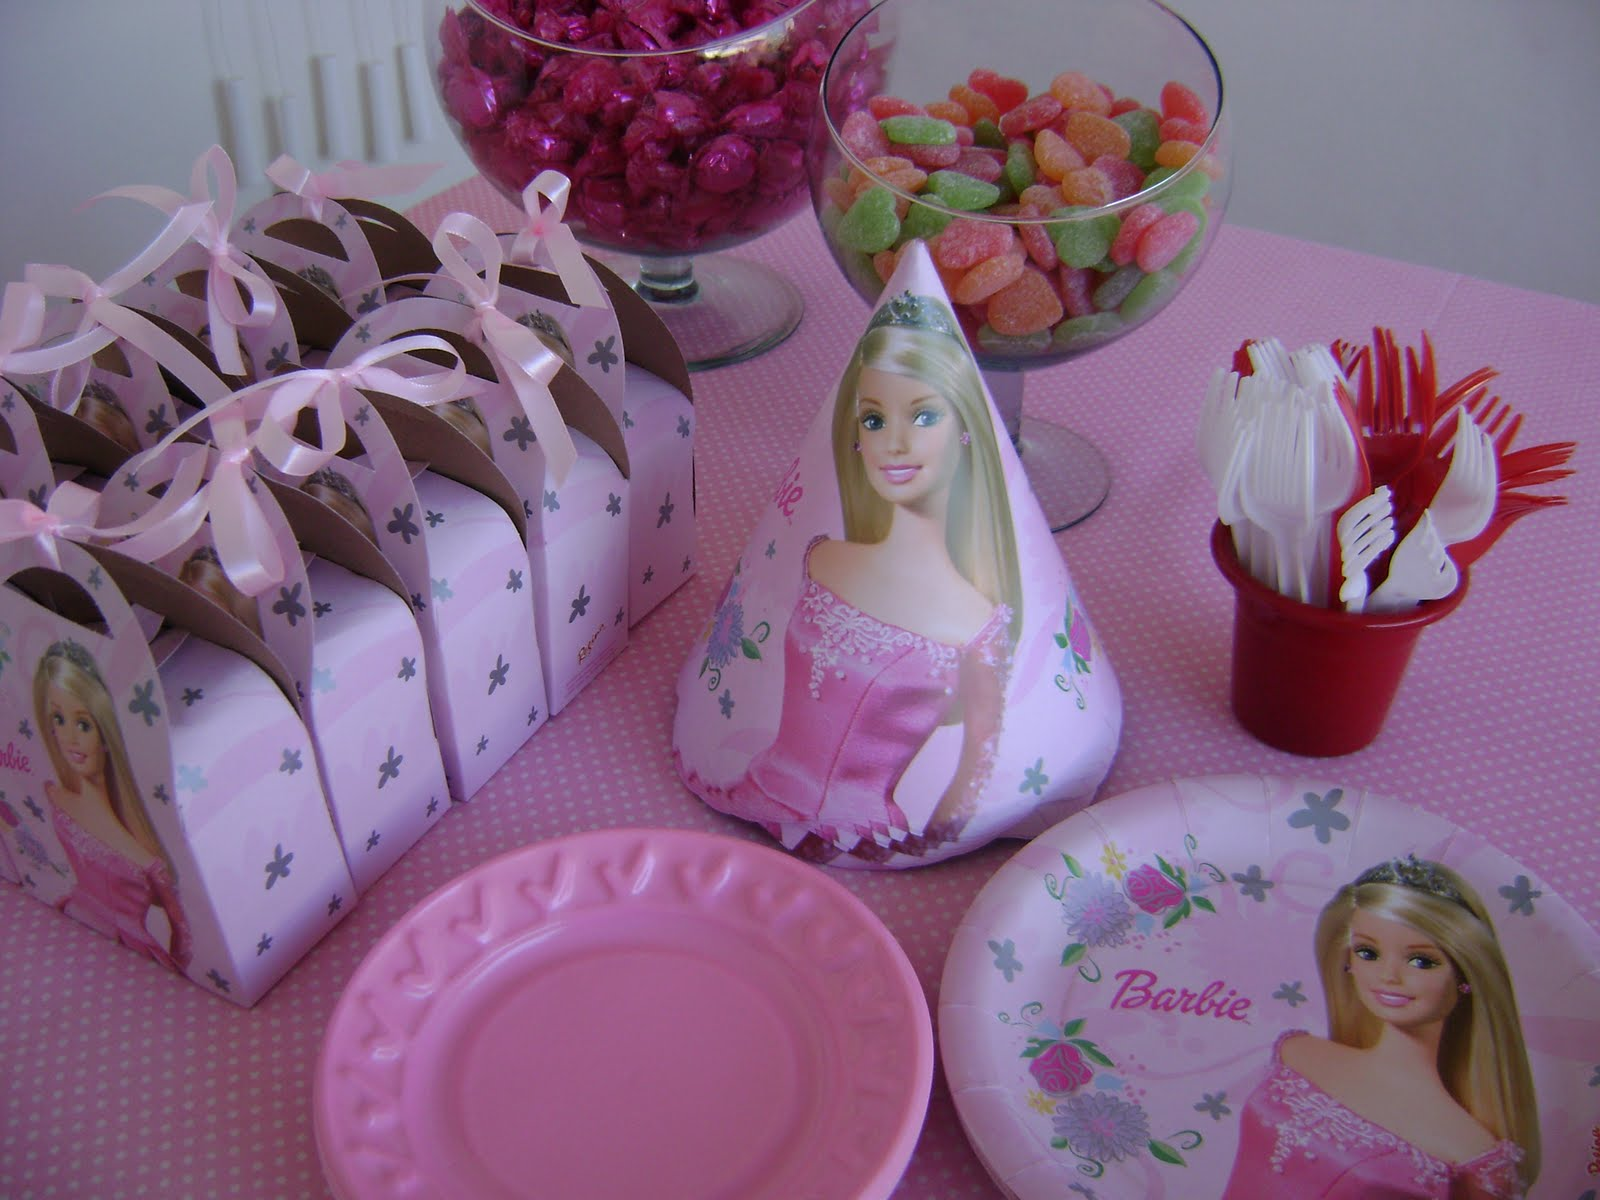 barbie-decoracao